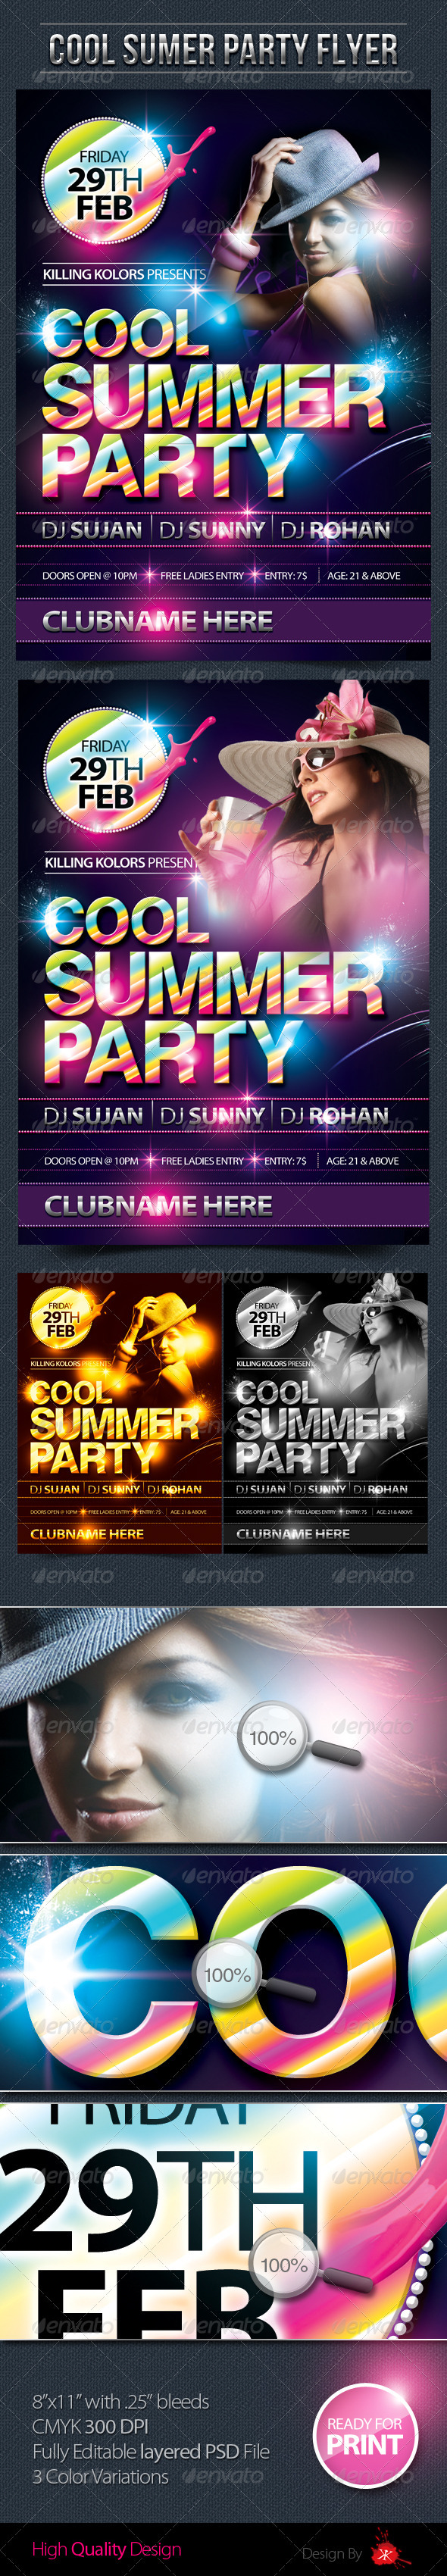 Cool Summer Party Flyer - Clubs & Parties Events